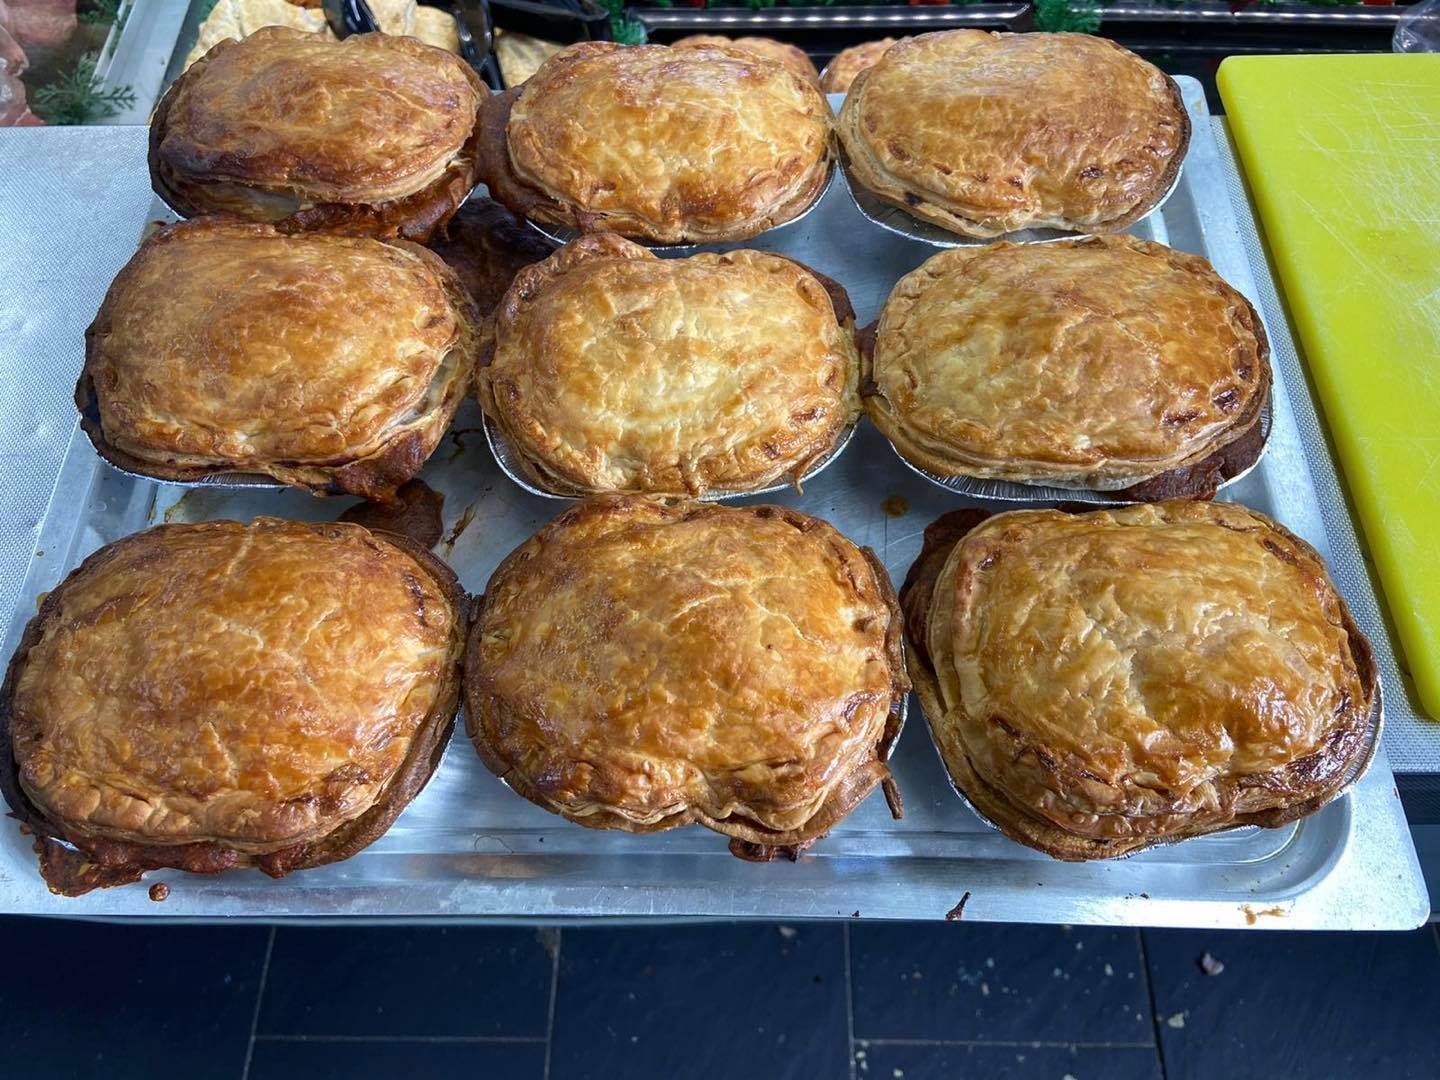 Steak Pie 400g - Bakers of Nailsea